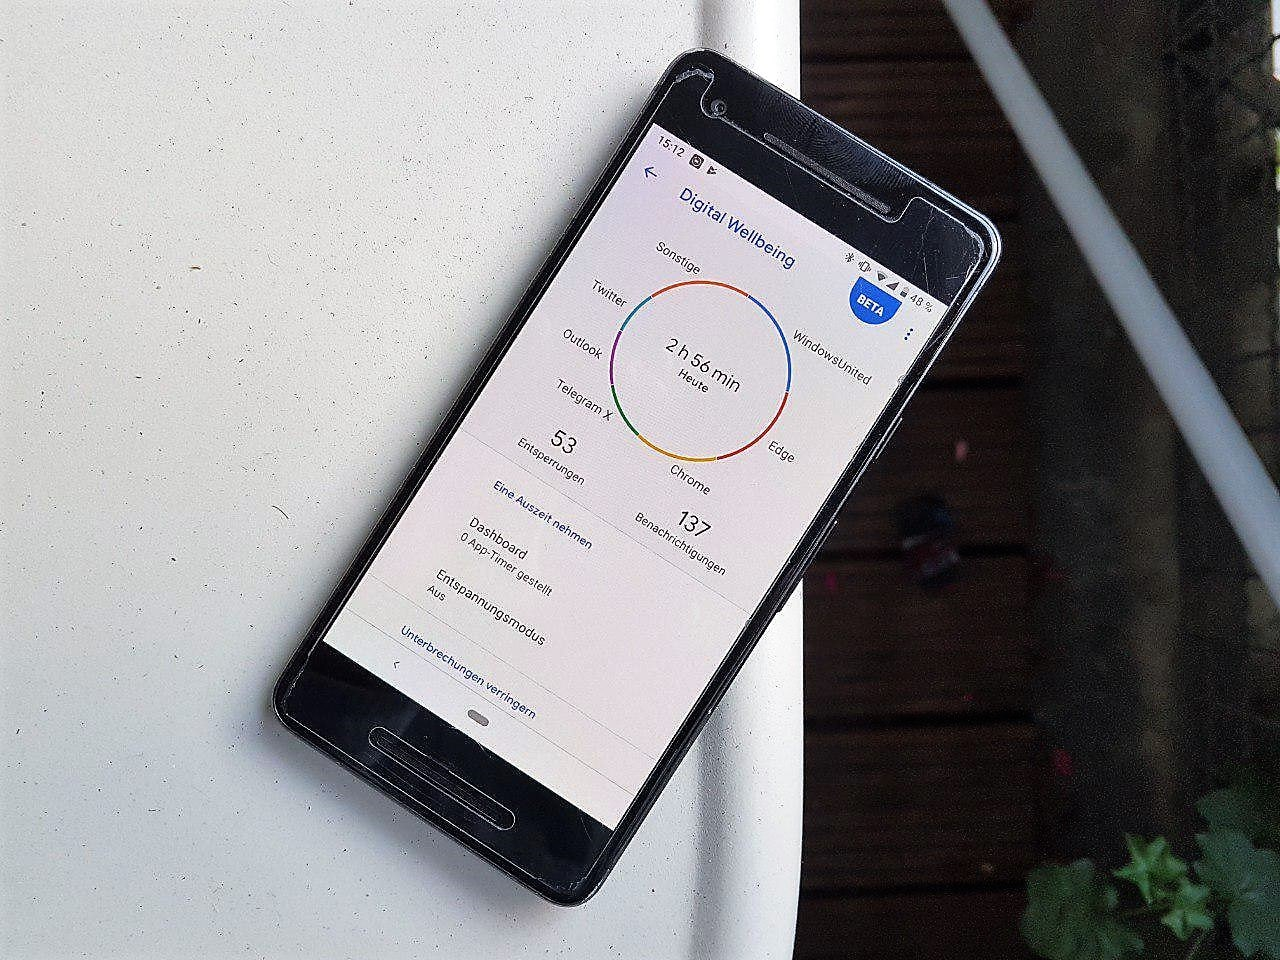 Digital Wellbeing Nokia Android 9 Pie